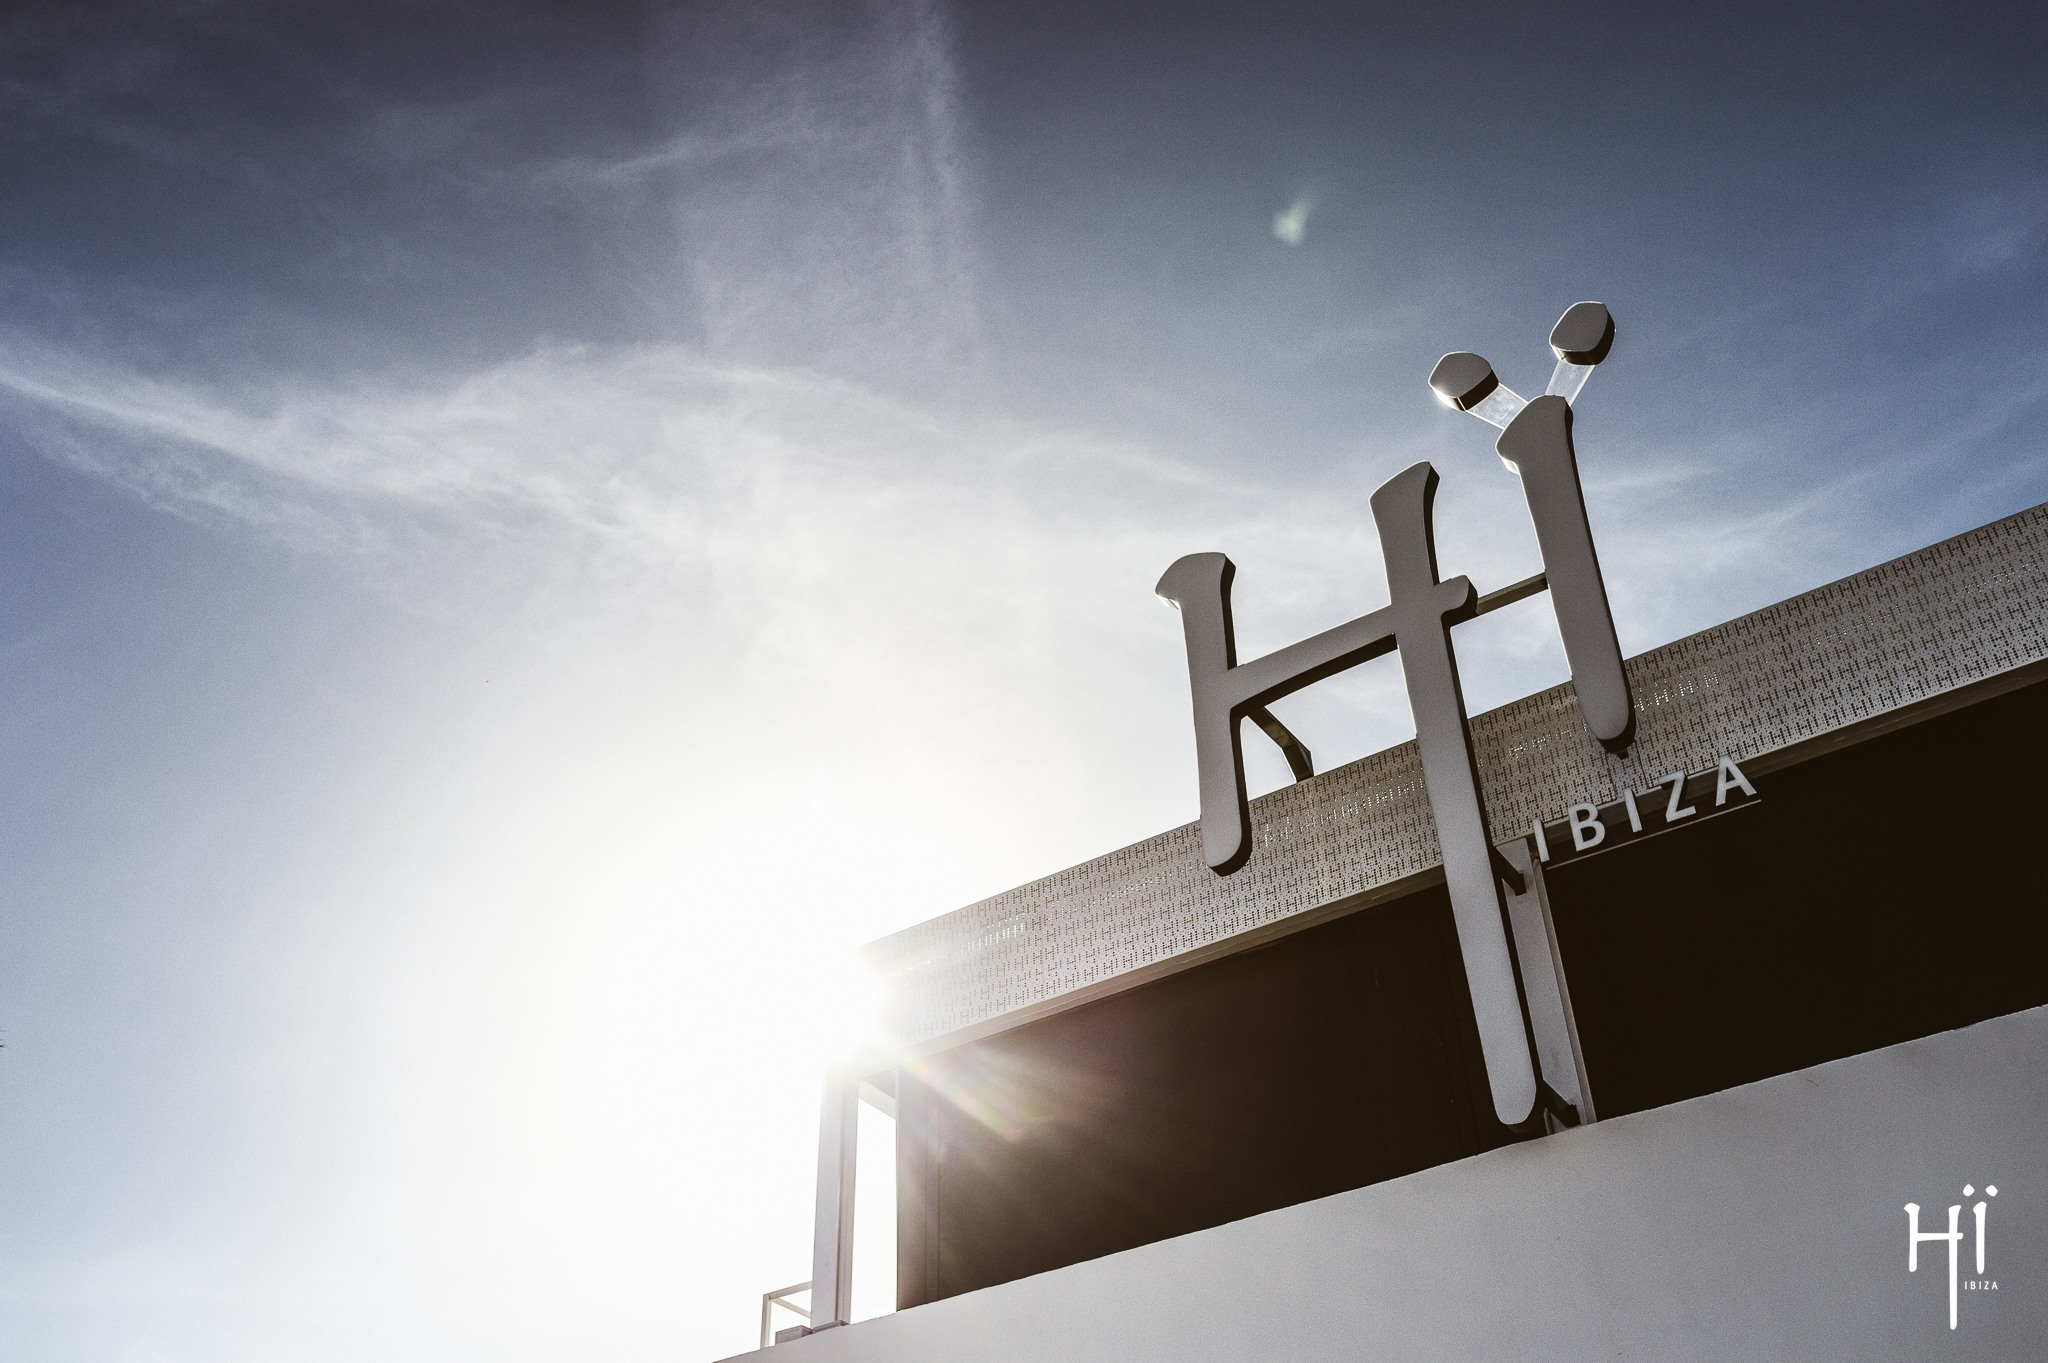 Hï Ibiza has finally opened its doors